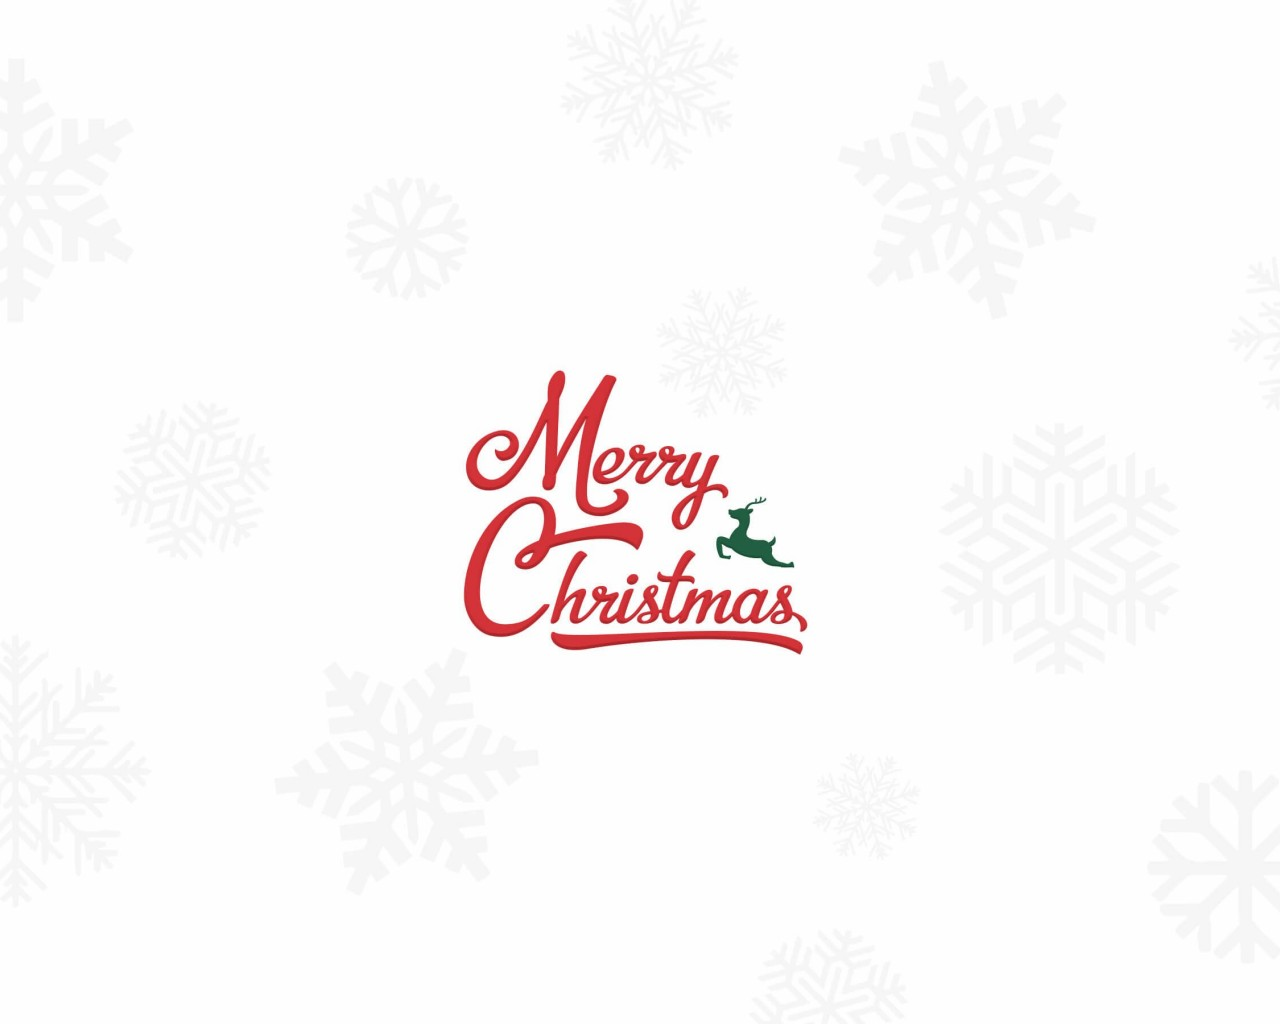 Merry Christmas Wallpaper for Desktop 1280x1024